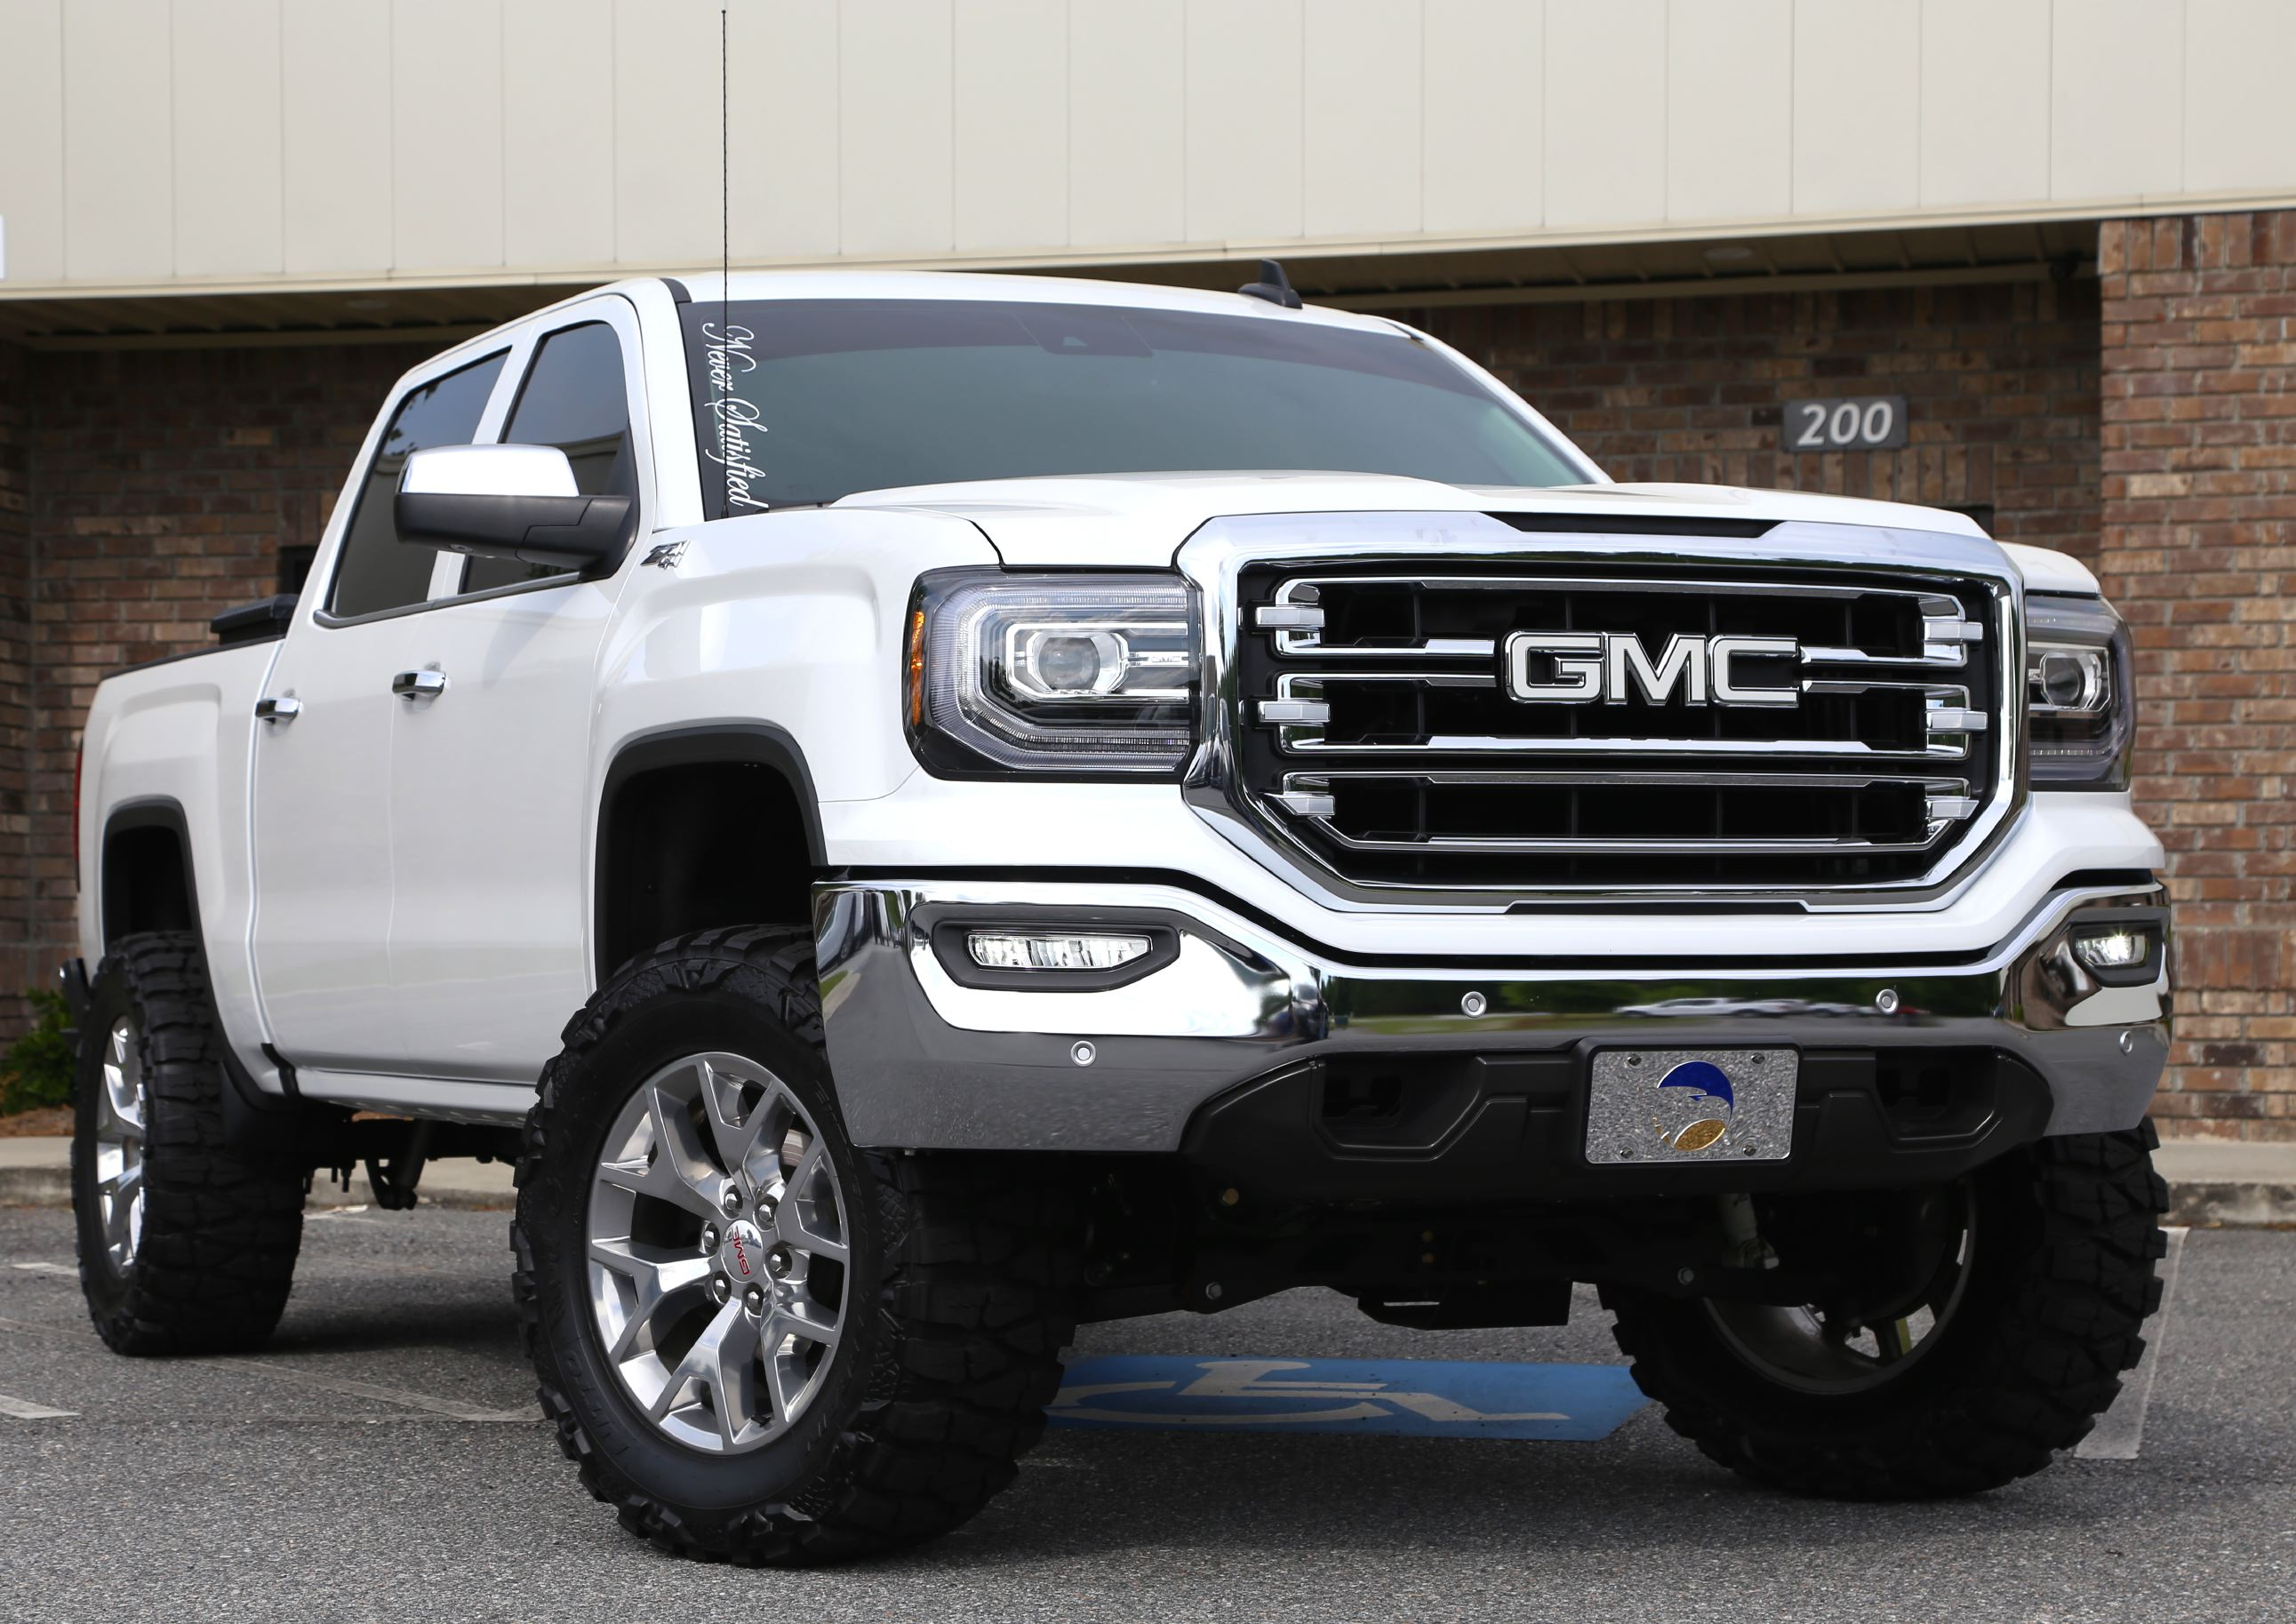 Clean '16 Lifted GMC Sierra - Trinity Motorsports